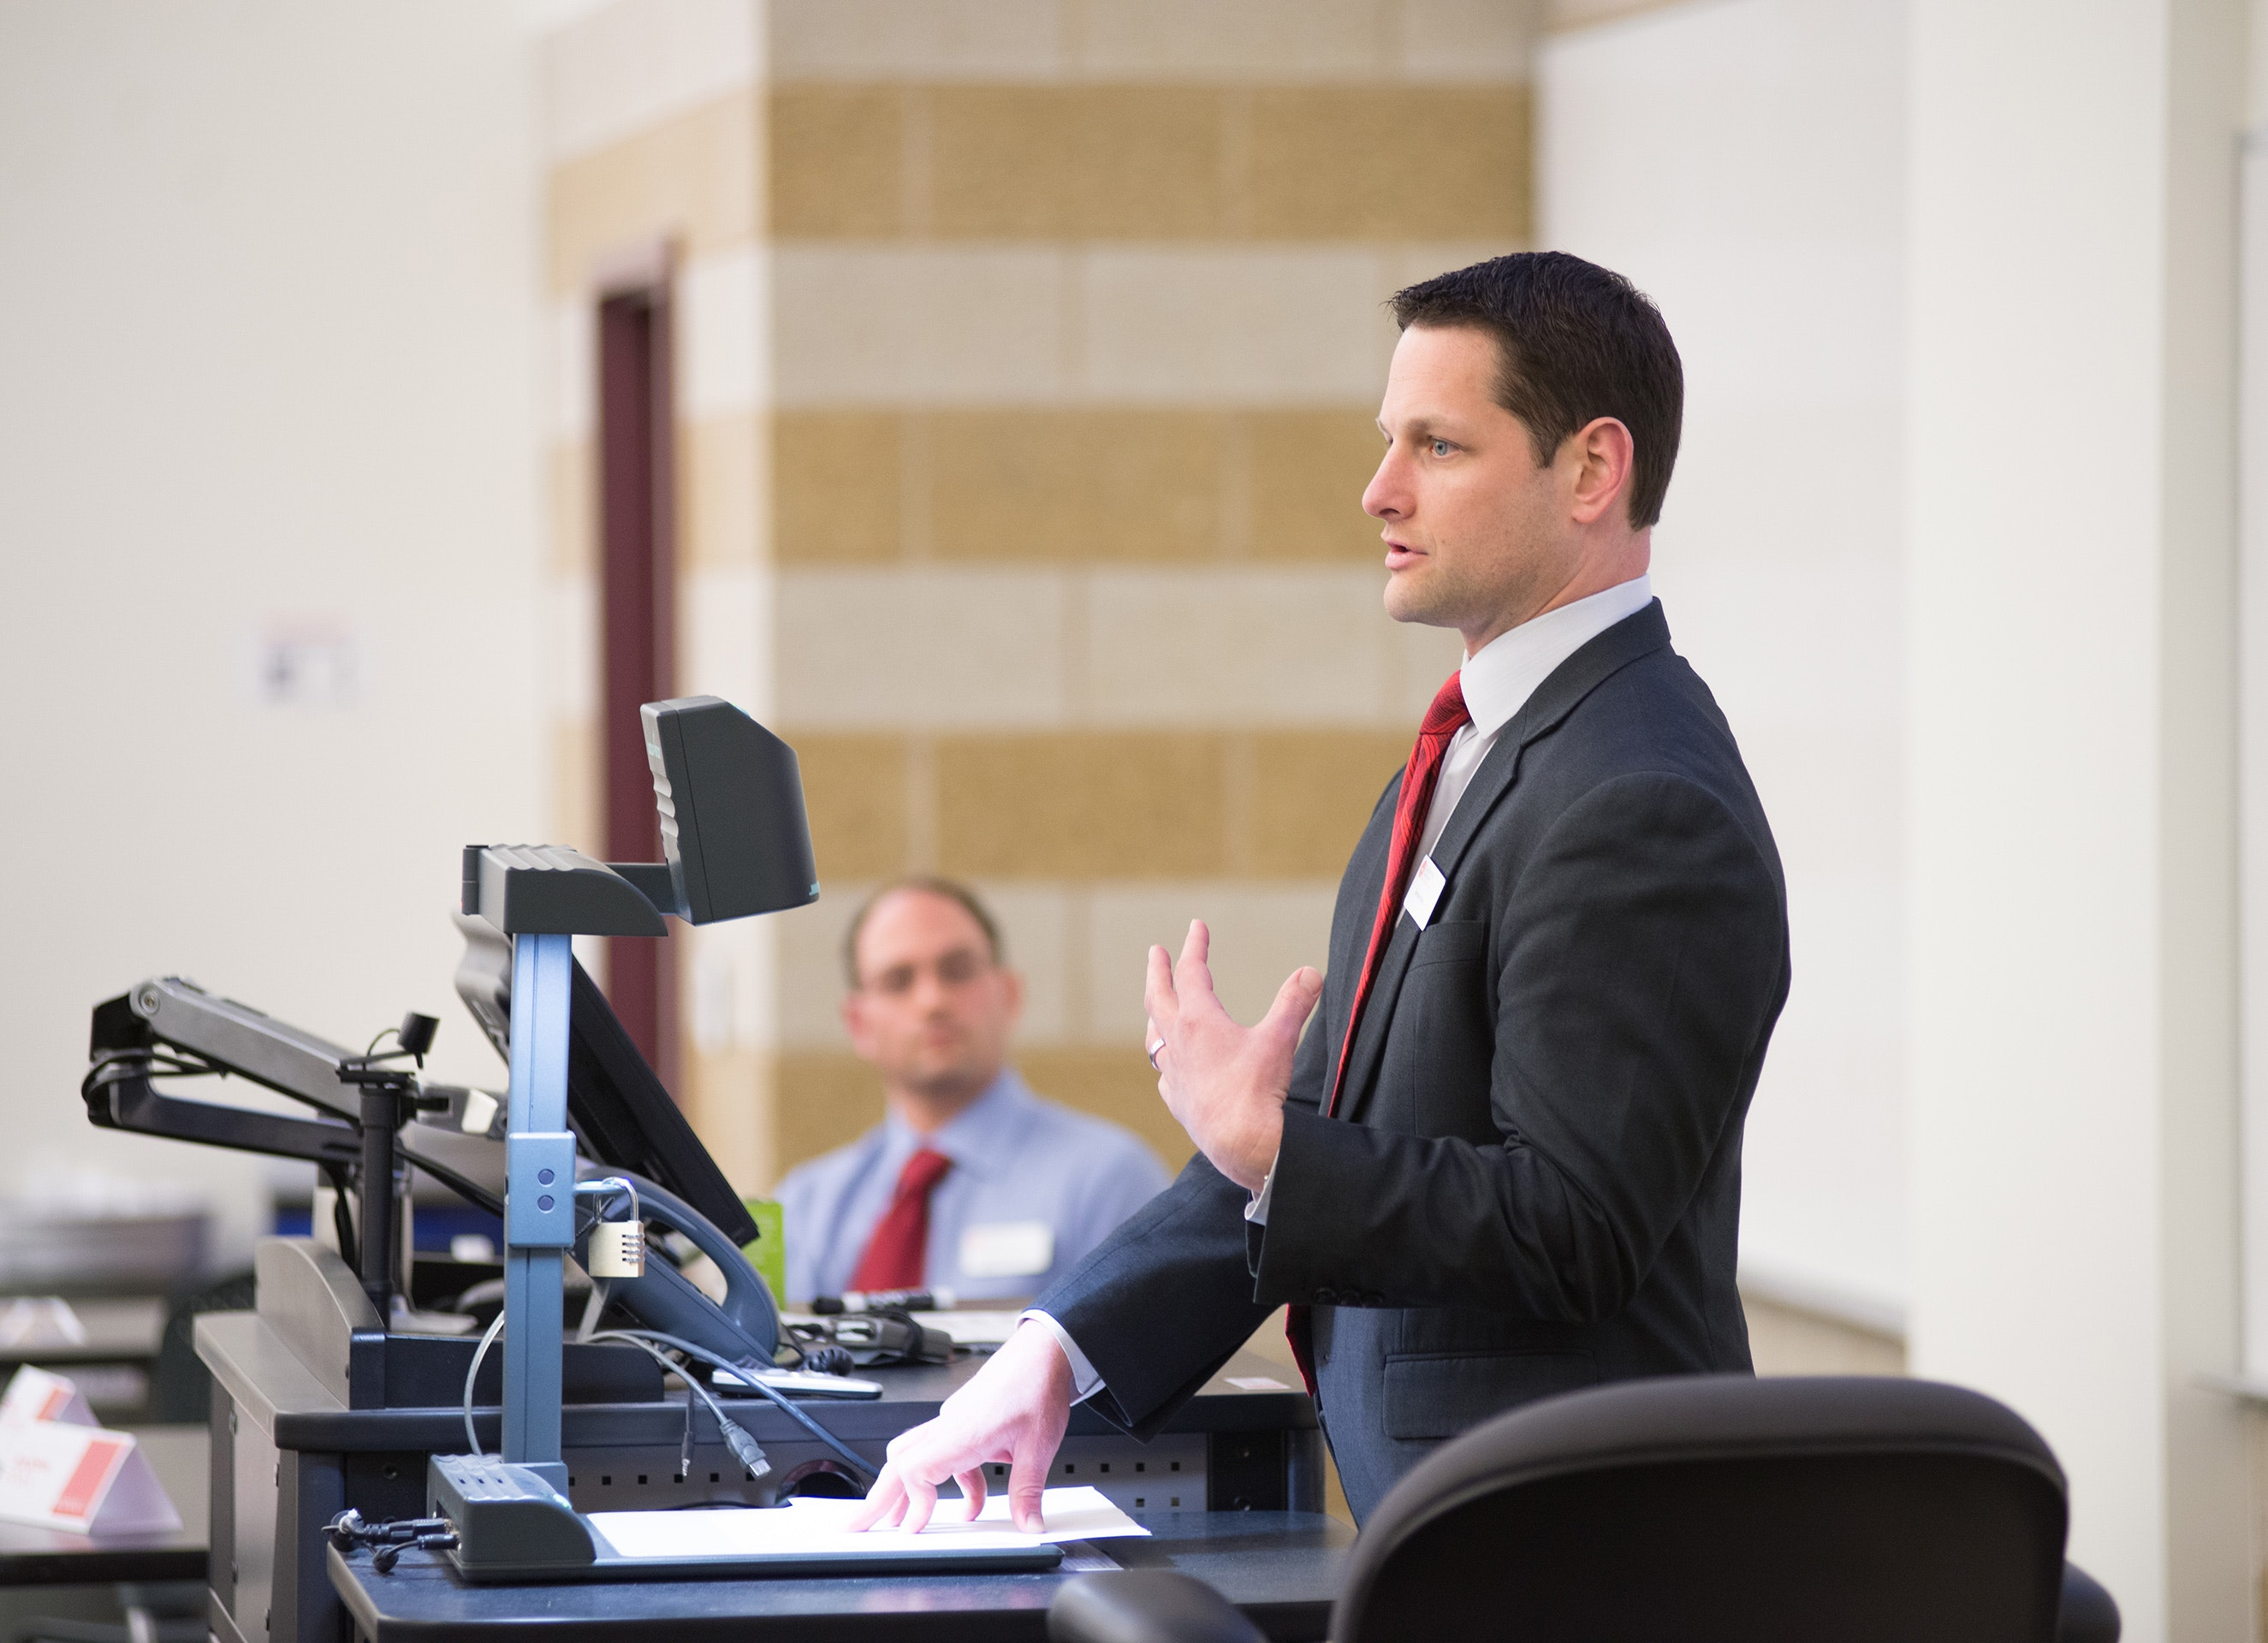 Male in suit presenting in a College of Business classroom.